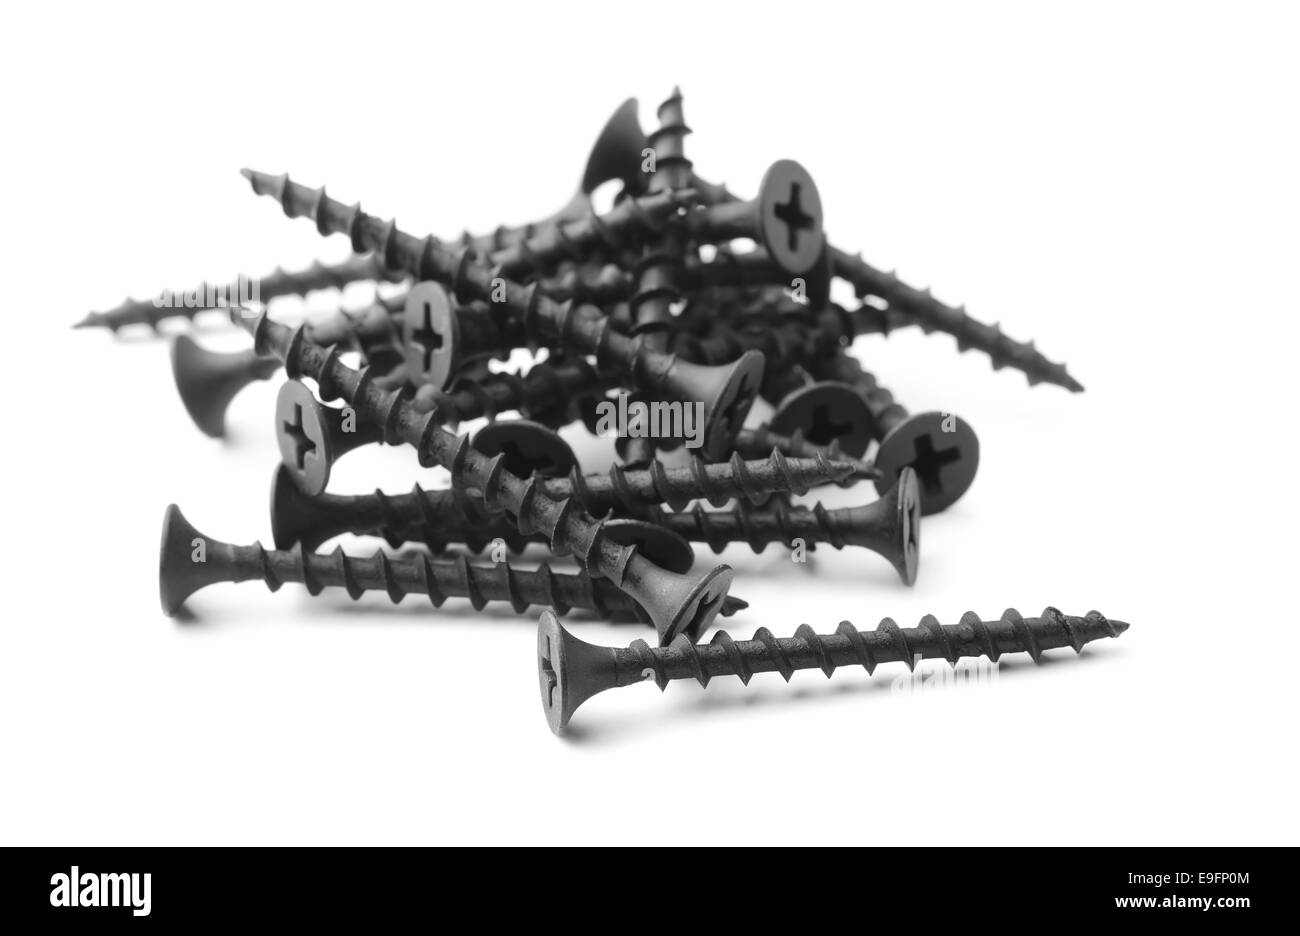 Fasteners Isolated Black and White Stock Photos & Images - Alamy